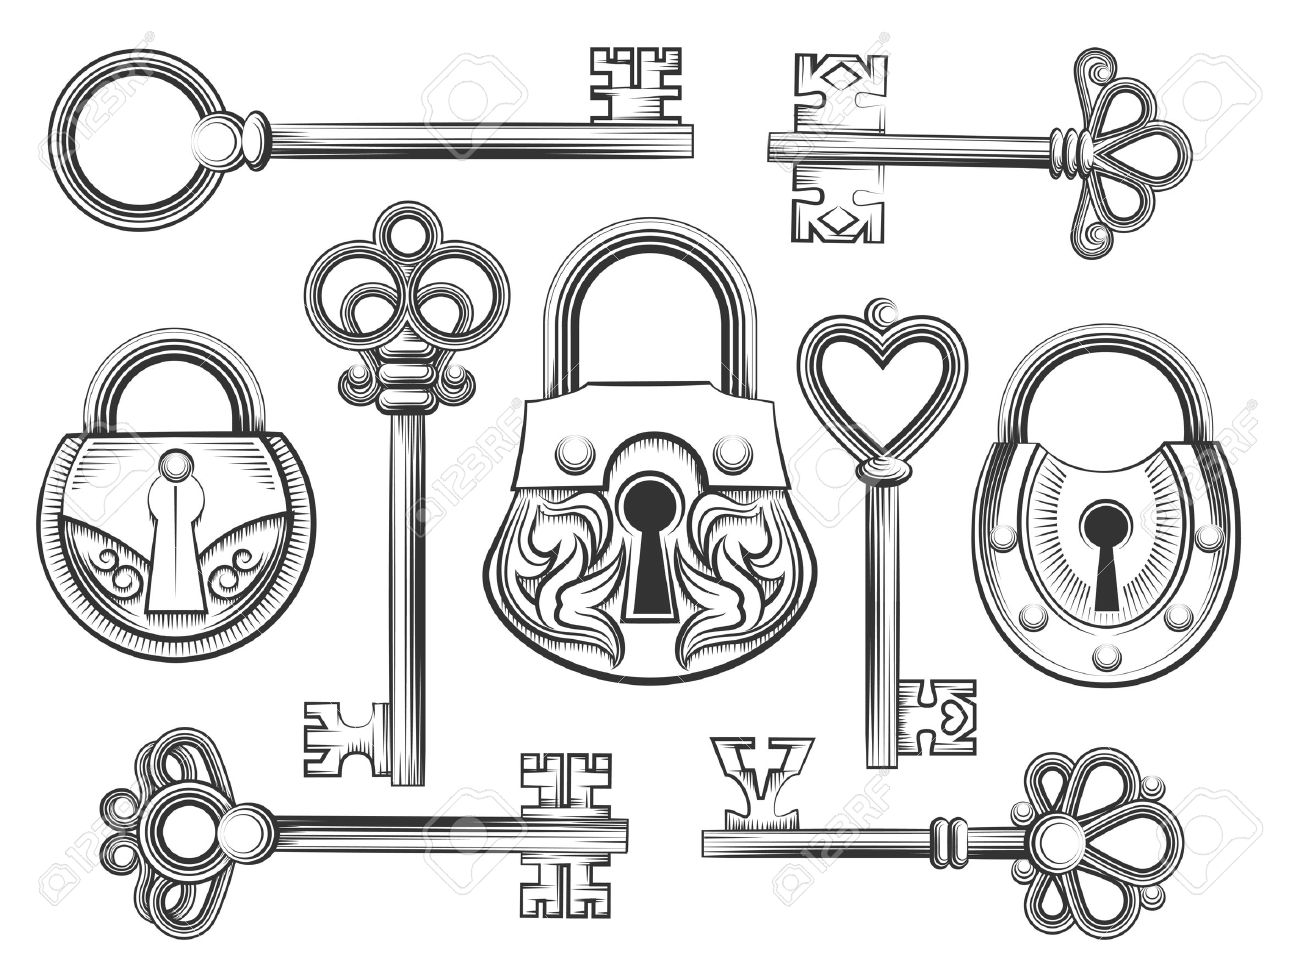 Vintage Key Drawing At Getdrawings